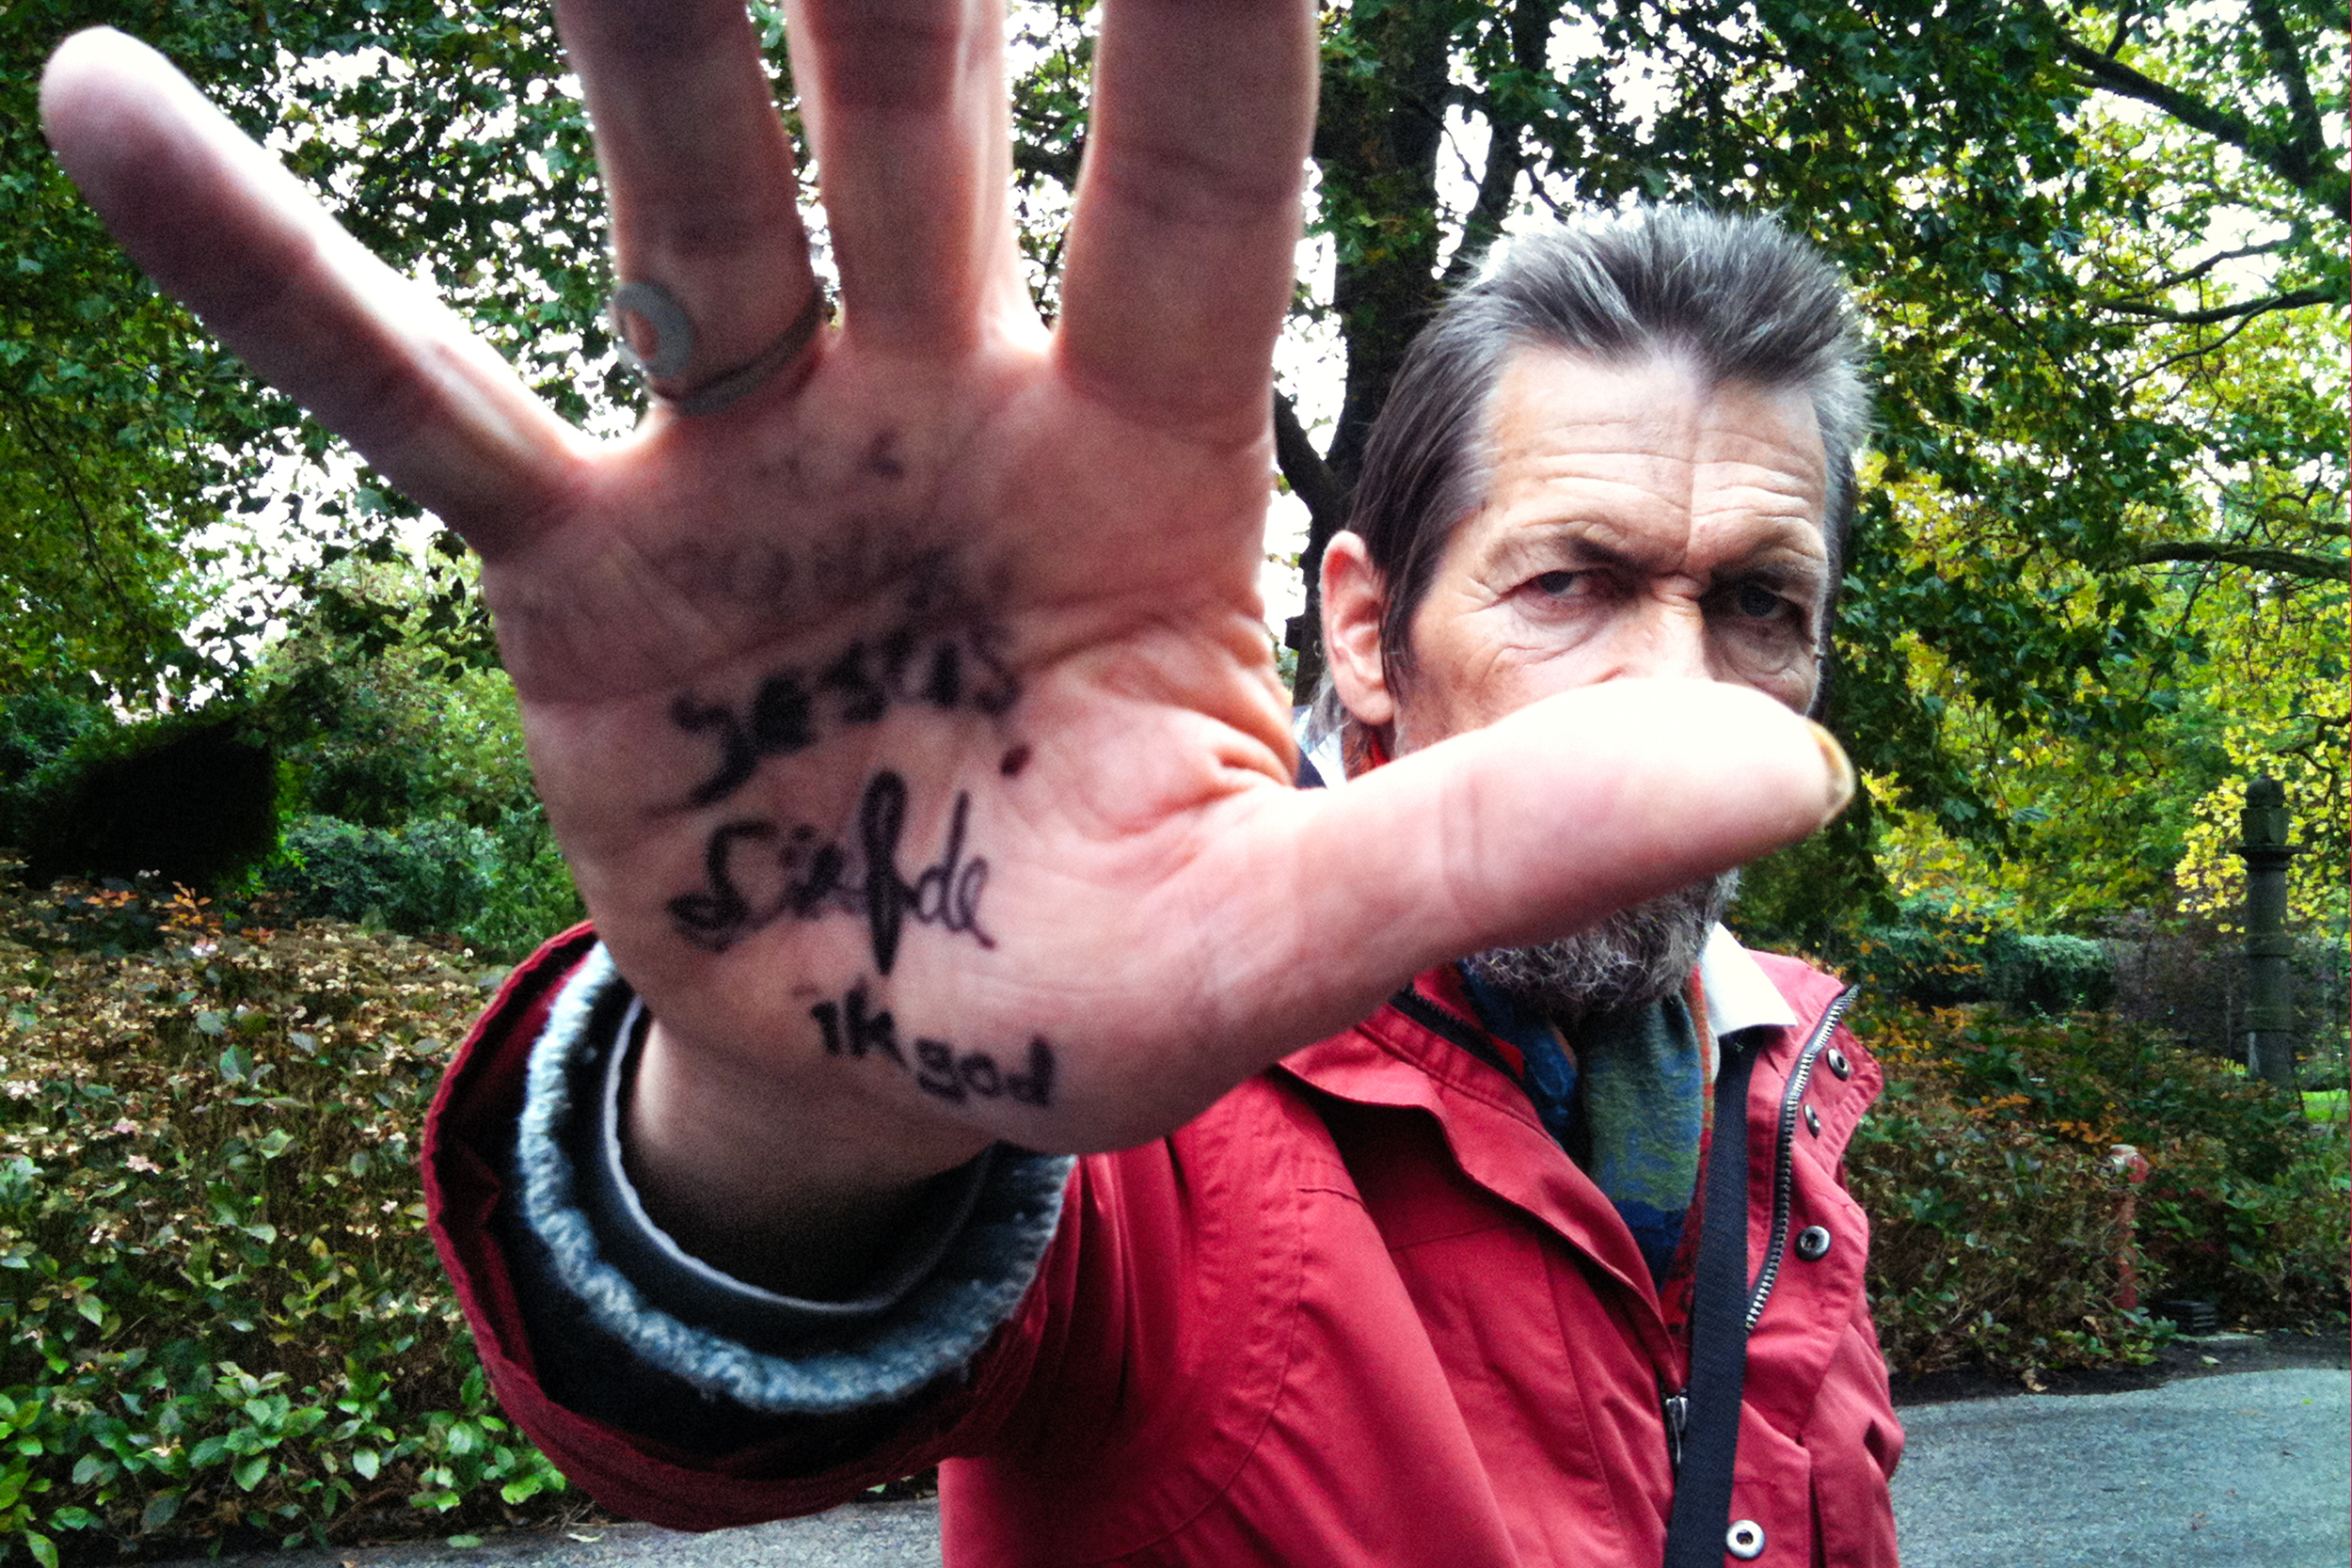 I found Guido in the park one morning with his hands covered in writing. I´m god, it says